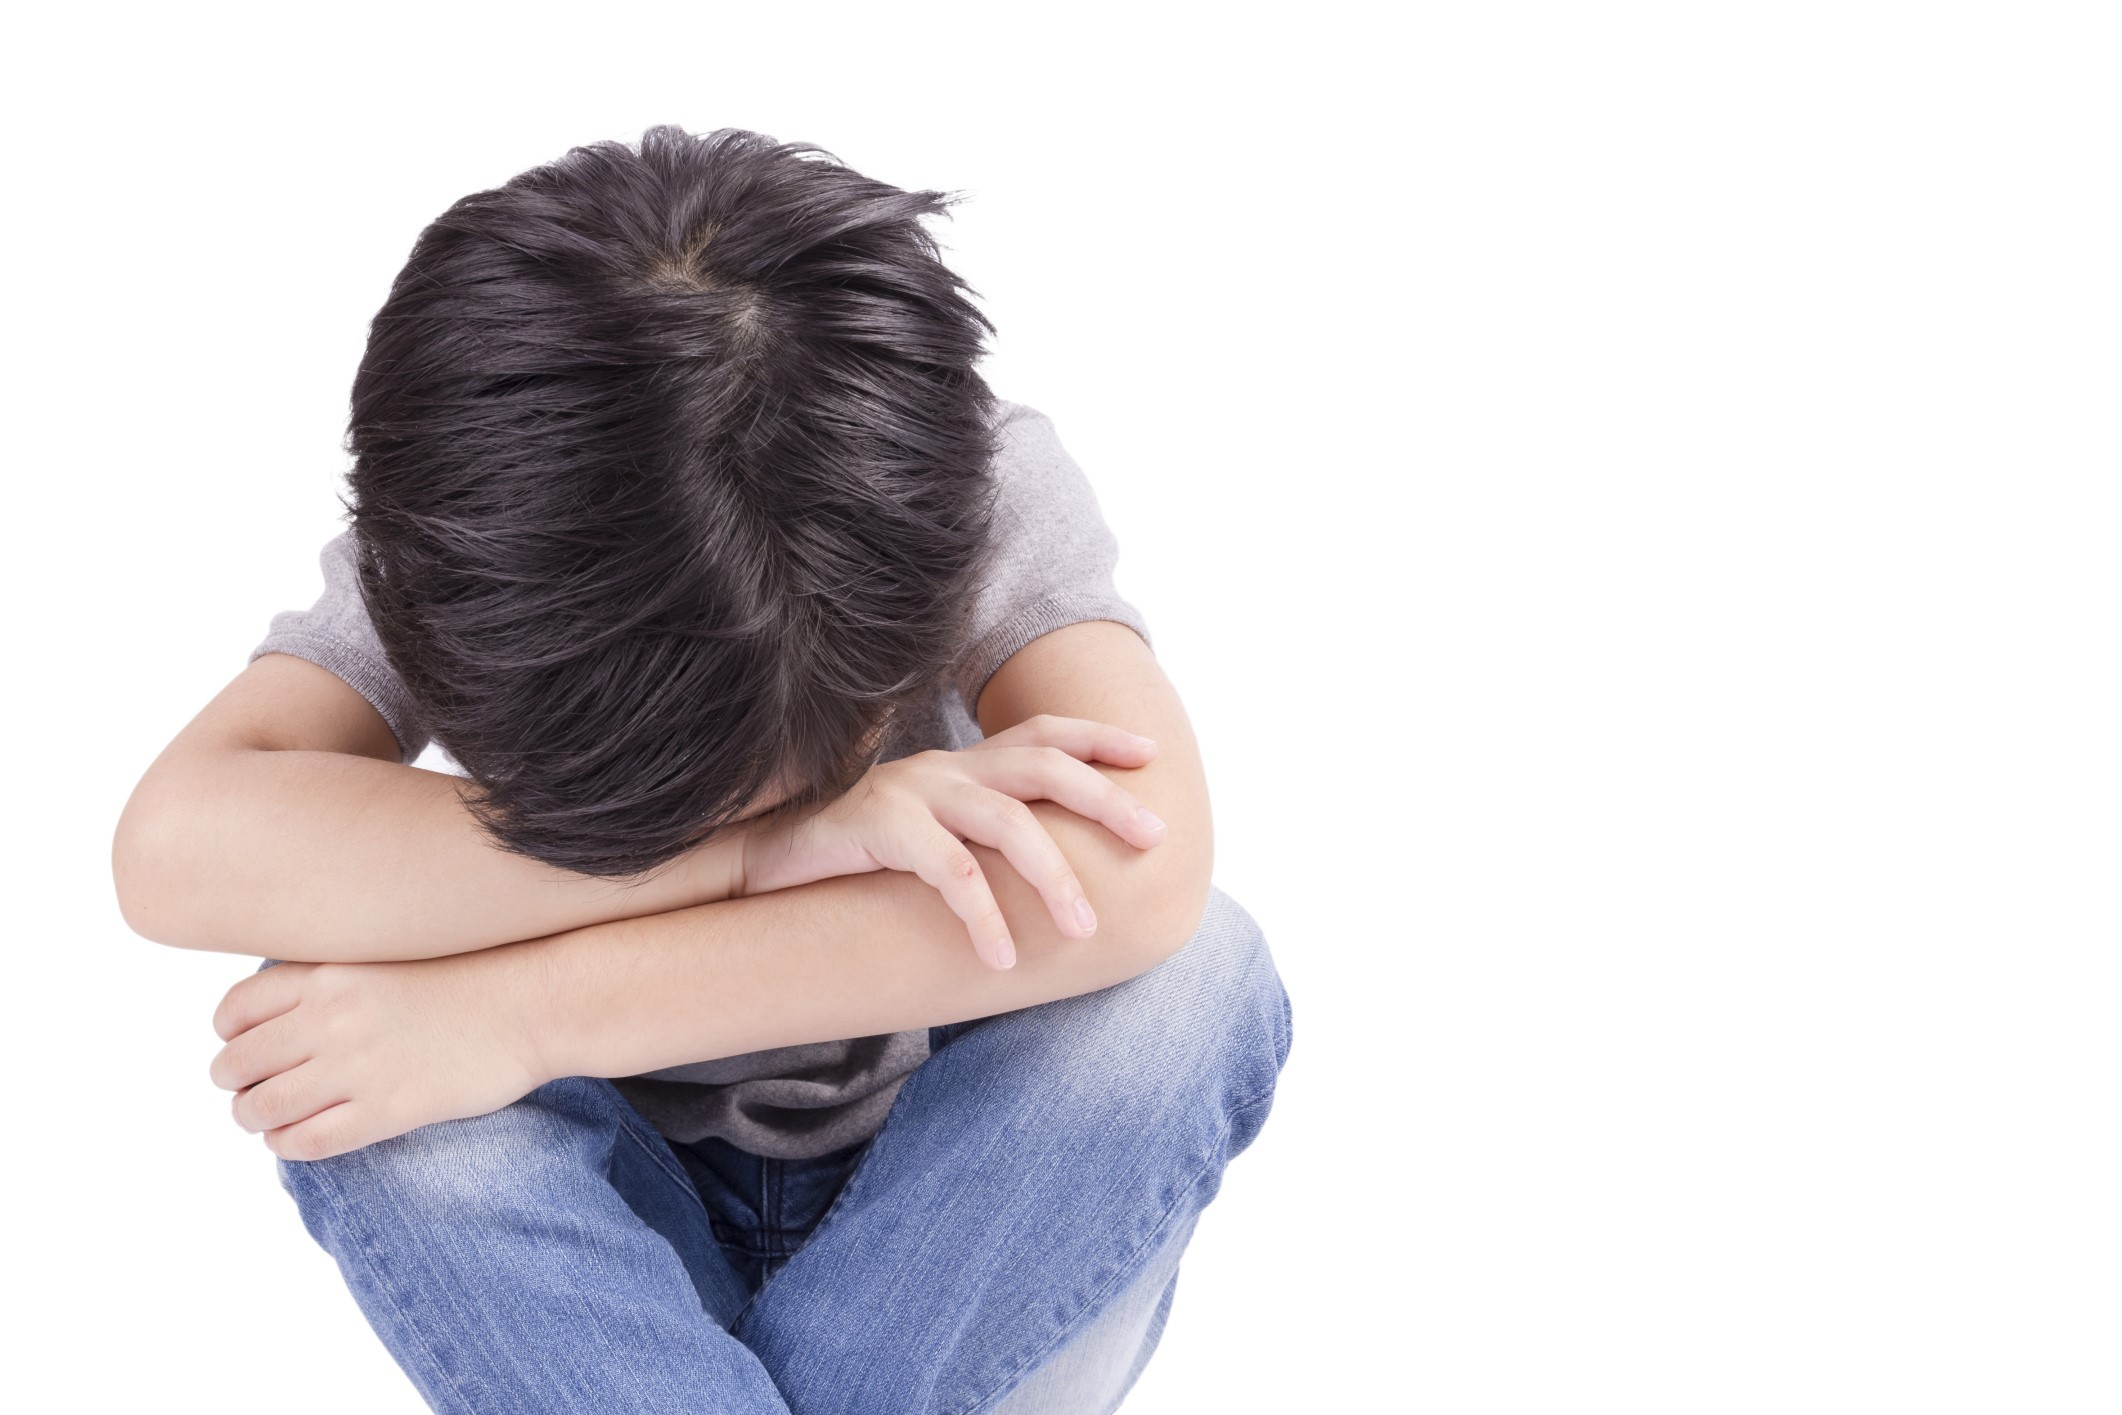 Huge rise in numbers of children who self harm